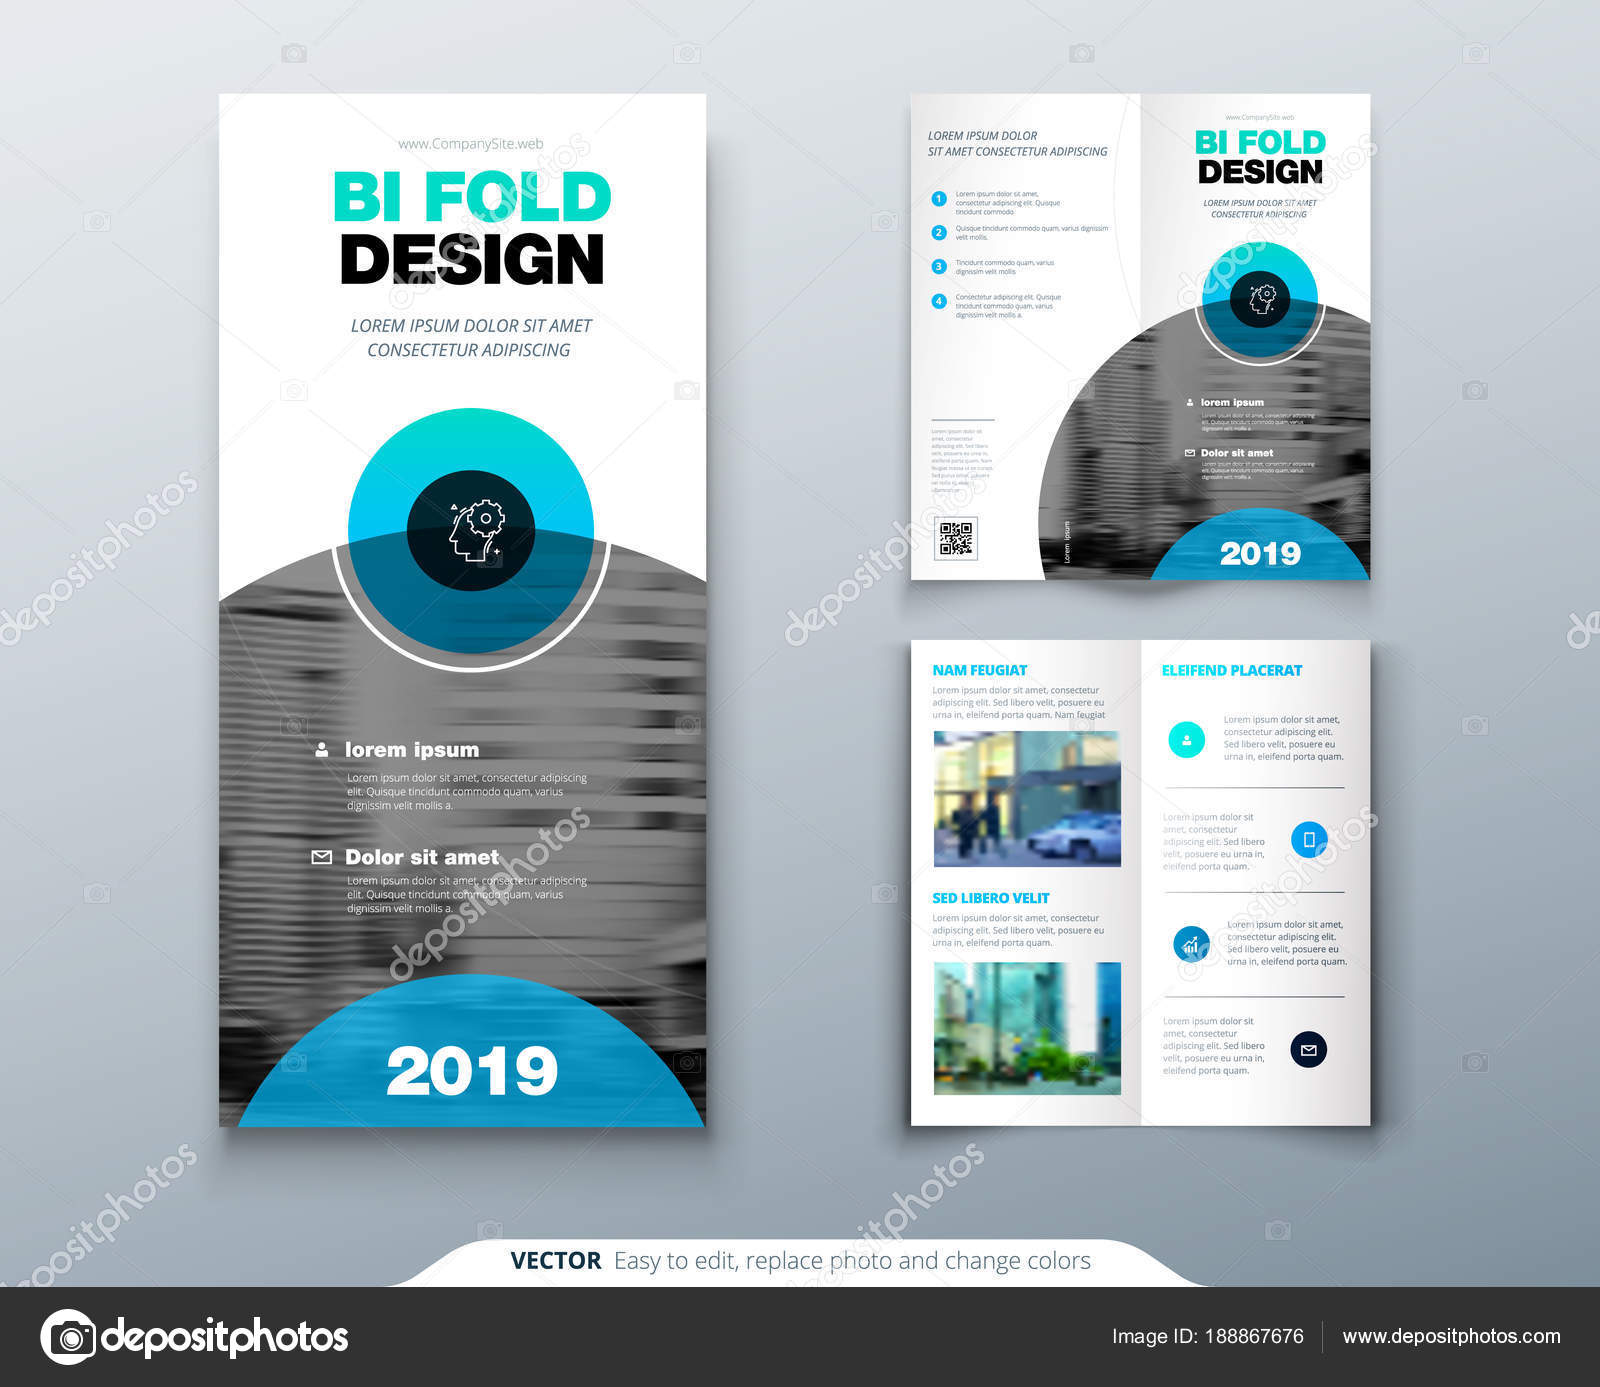 Tri fold brochure design  Business template for tri fold flyer with     Tri fold brochure design  Business template for tri fold flyer with modern  circle photo and